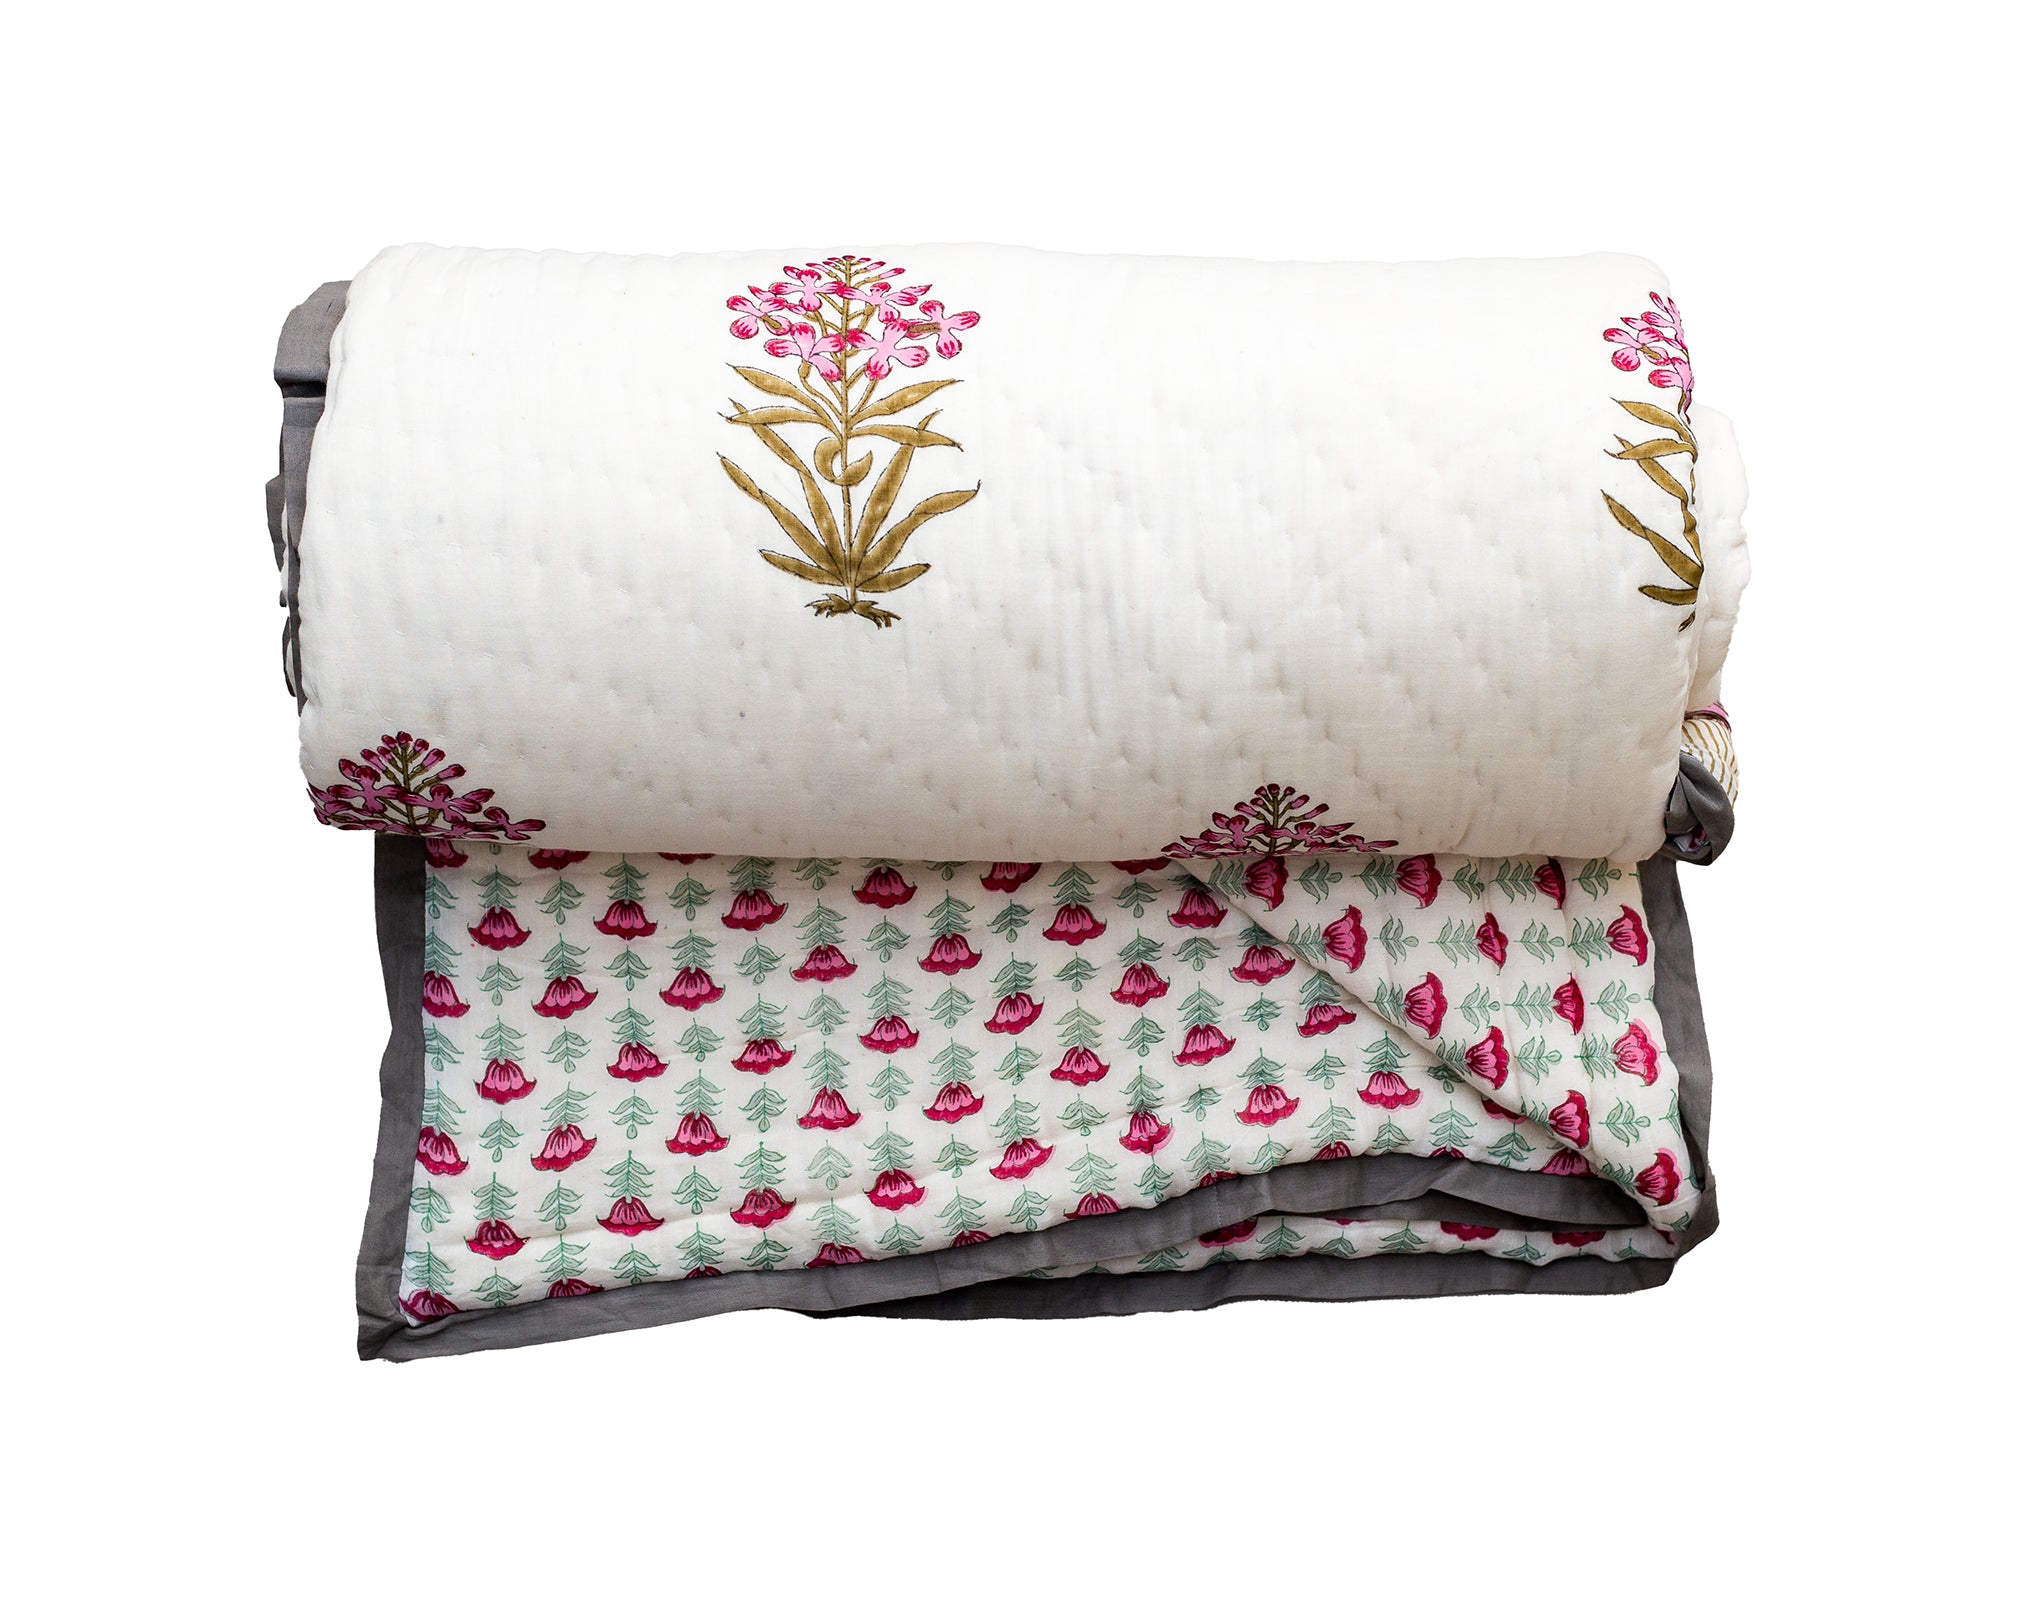 All New Roysha 2021 Queen Quilt Collection, 100 Percent Handmade, Hand Block printed Quilt, Natural Cotton filling, Pink Floral